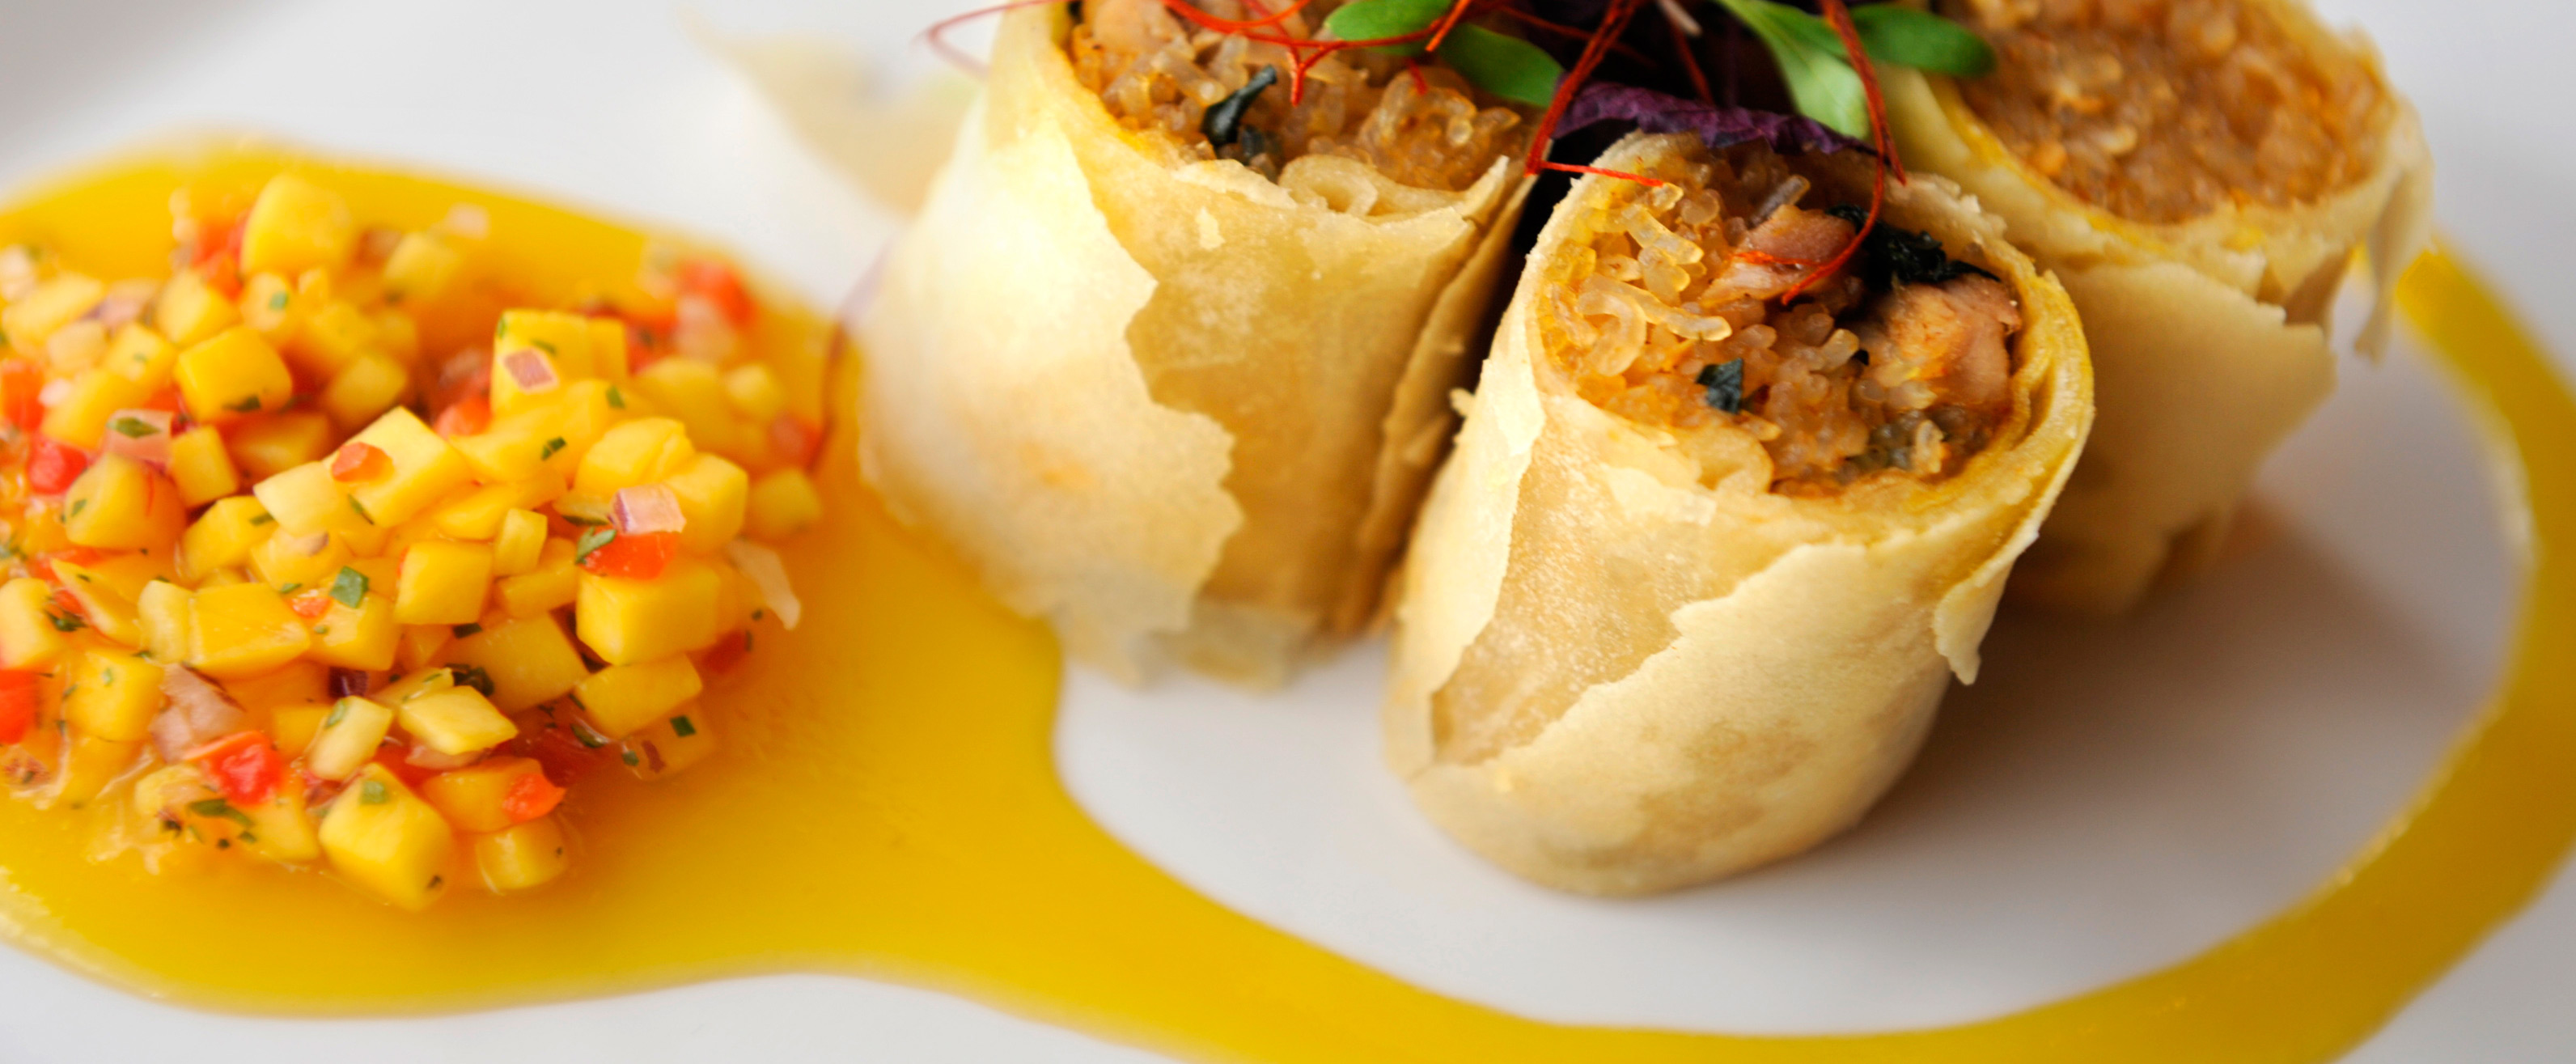 An egg roll cut into 3 pieces on a white plate garnished with mango salsa